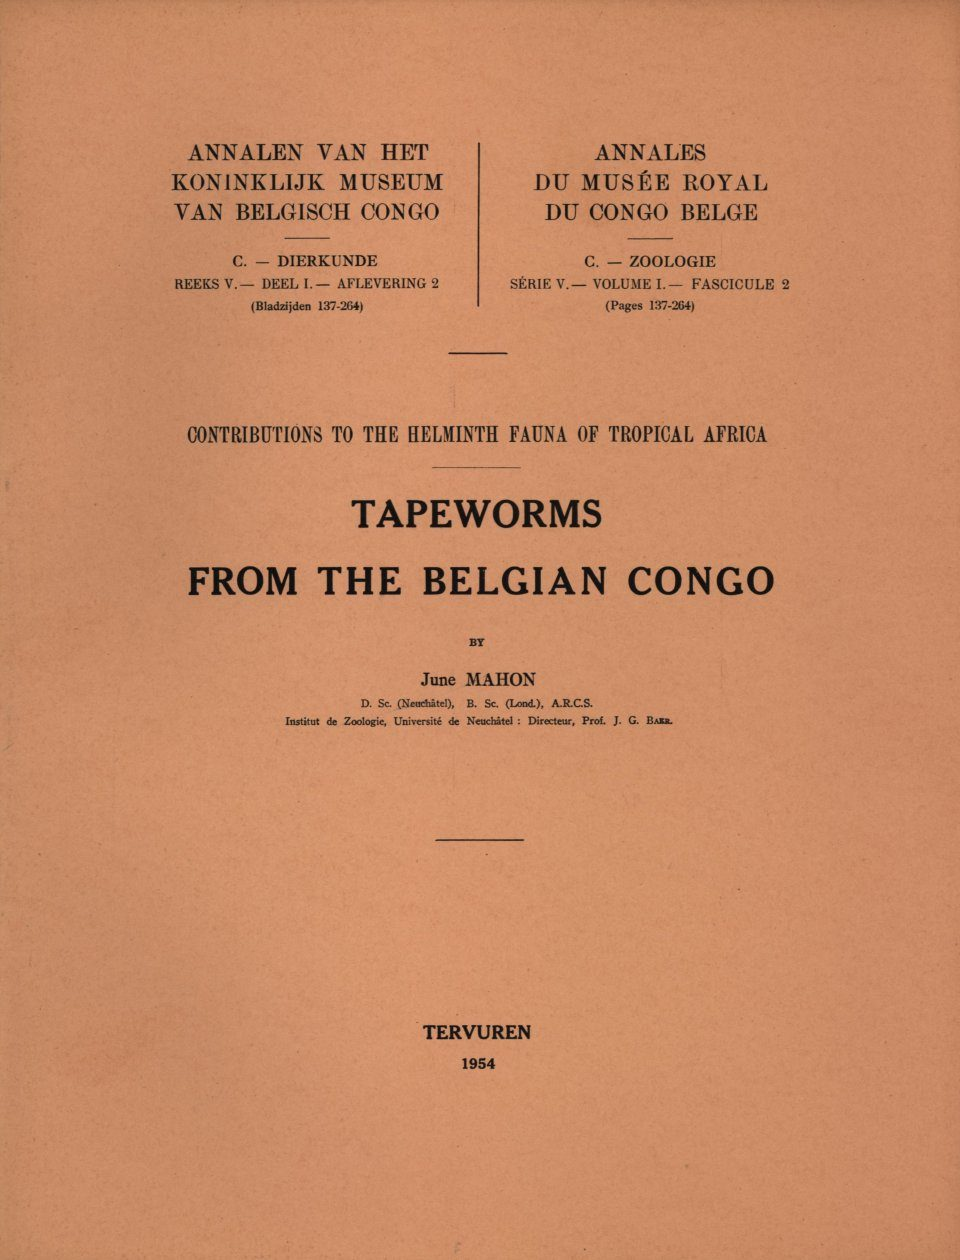 Contributions to the Helminth Fauna of Tropical Africa – Tapeworms from the Belgian Congo